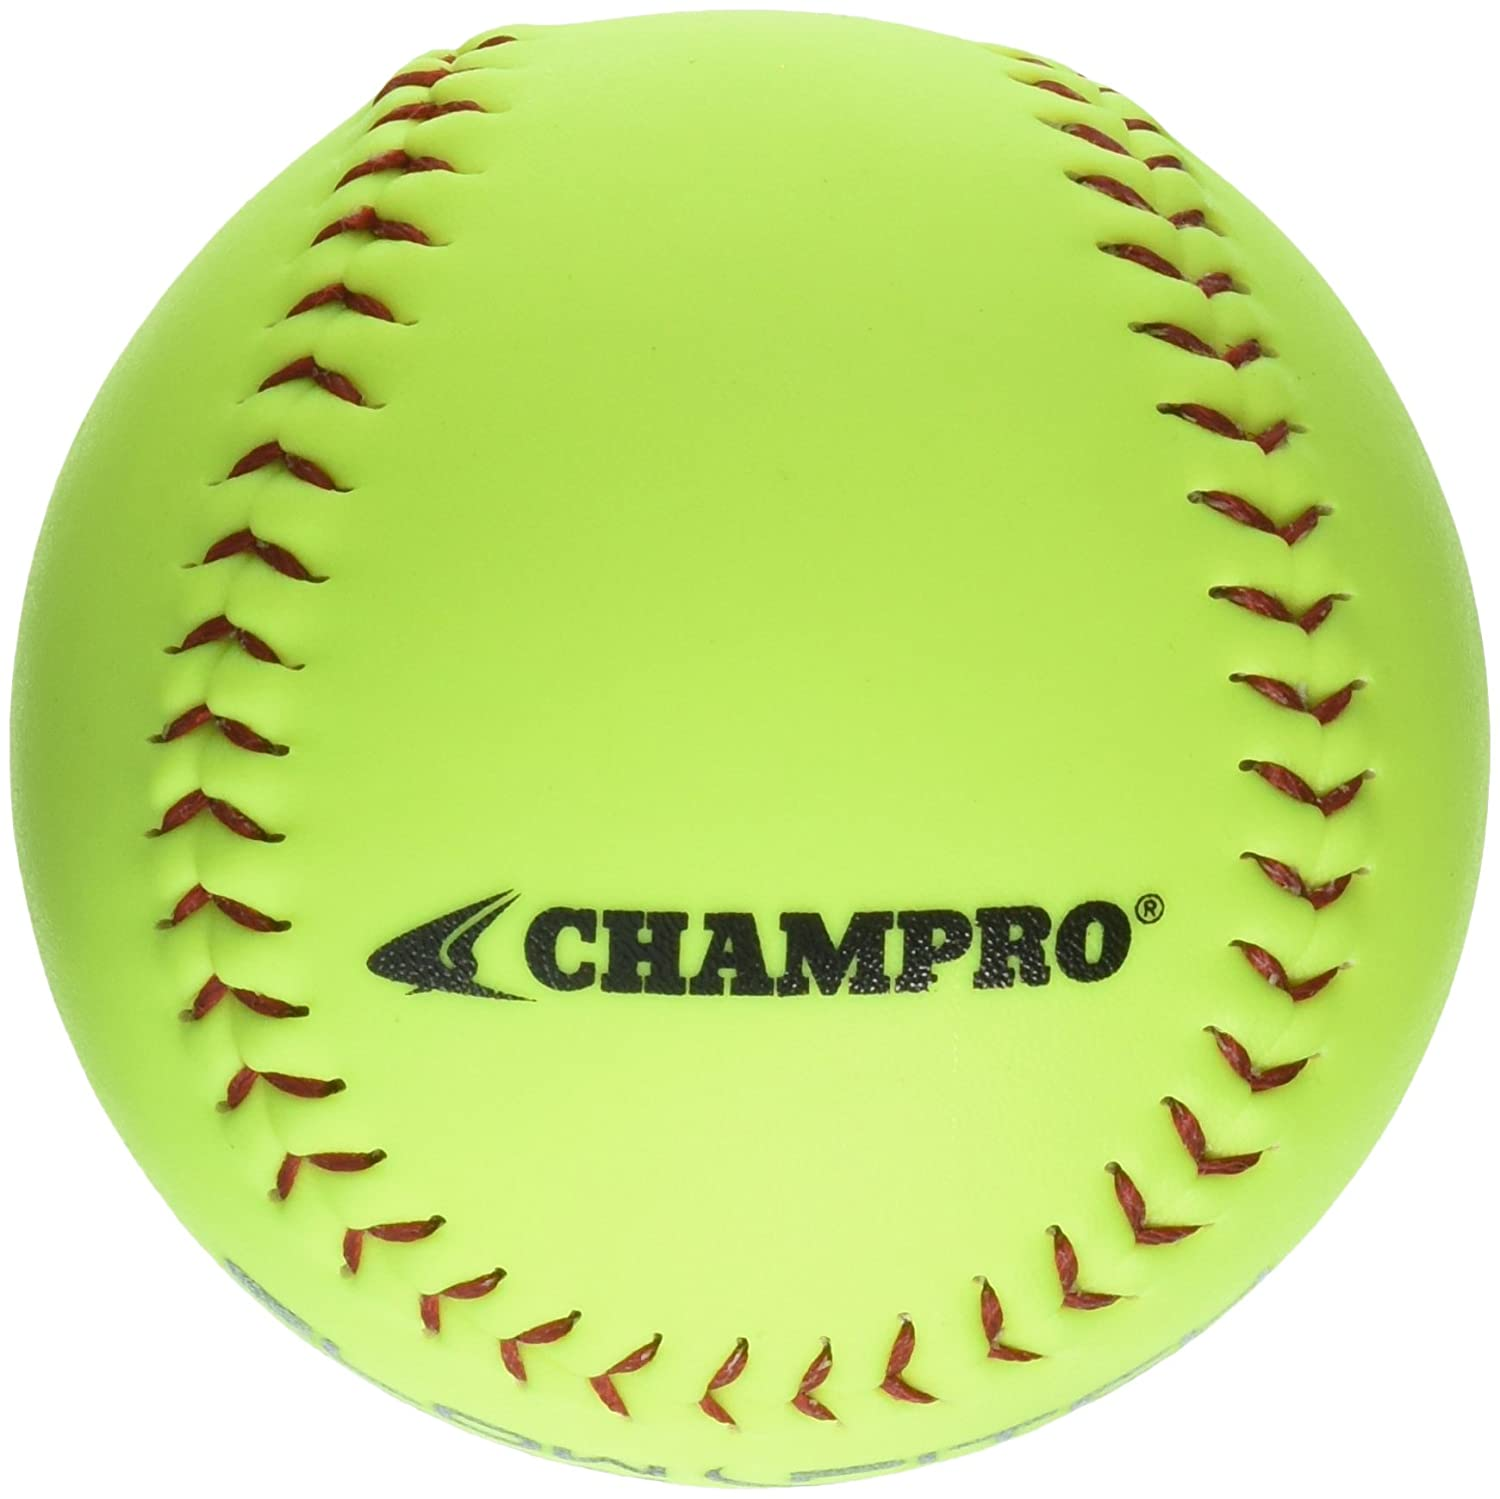 Champro of Game ASA Slow Ptich .44 COR, 375 375 Compression, ASA Poly Synthetic Cover, Red Stiches (Optic Yellow, 30cm ), Pack of 12 B004HH78S4, 剣道良品館:81dc4066 --- sayselfiee.com